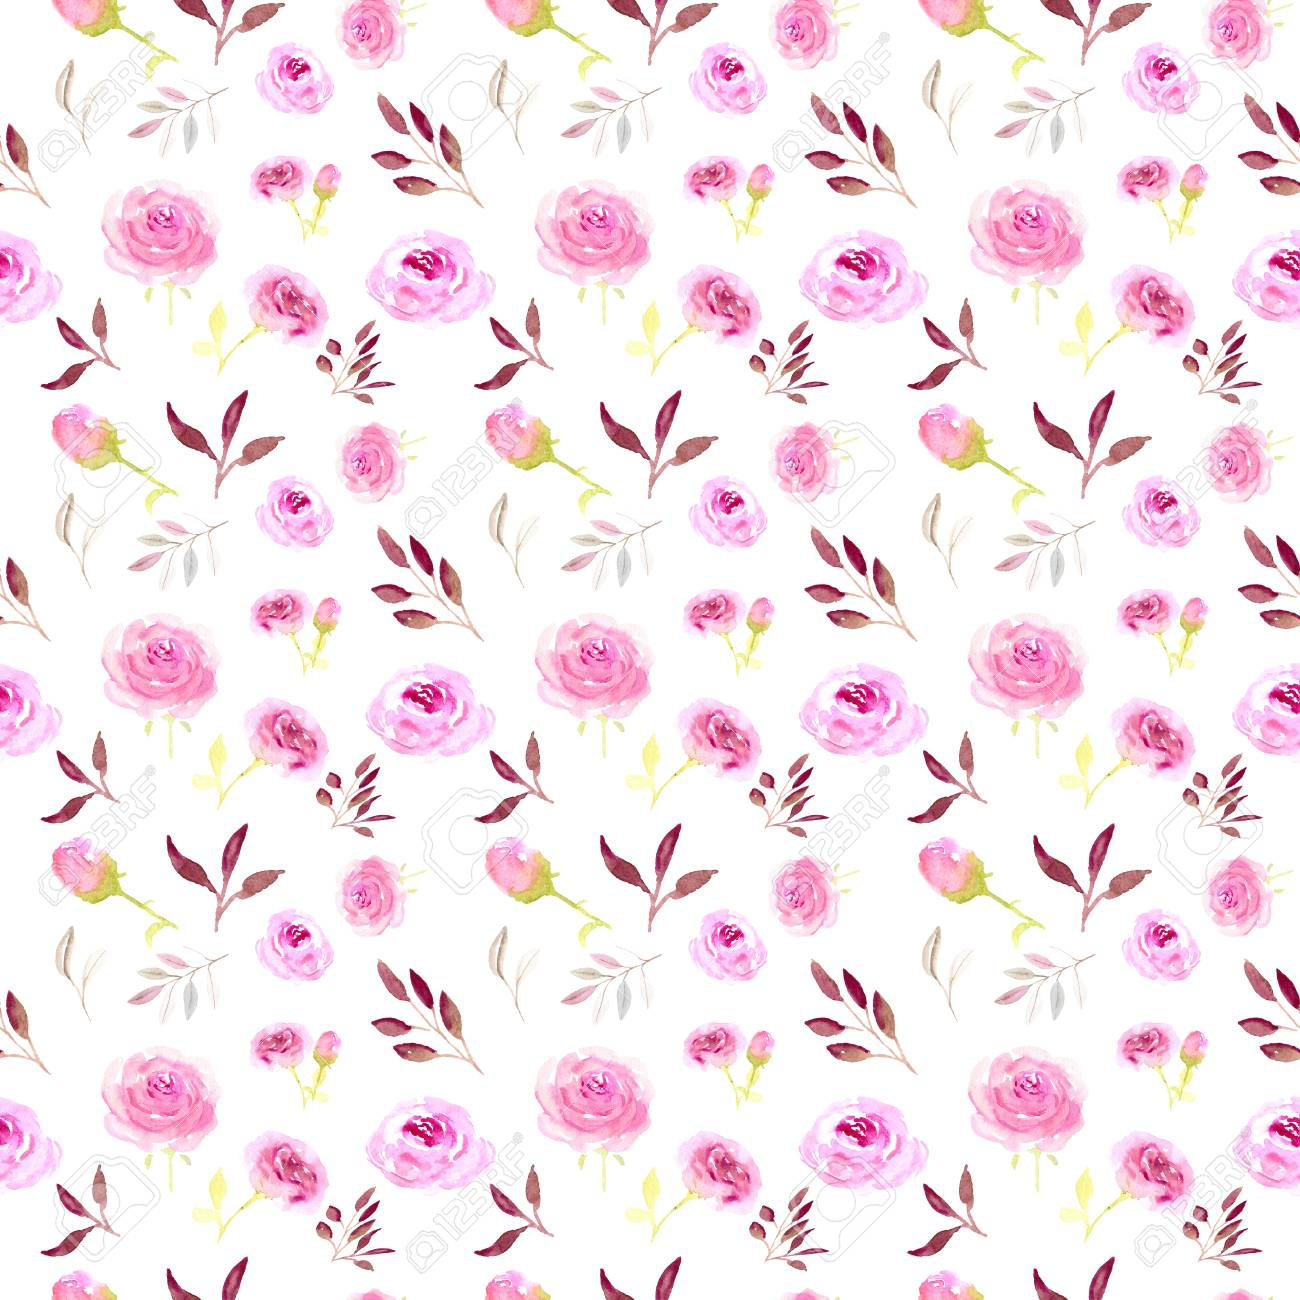 Fine Decor Chinoiserie Floral Wallpaper Pink Fd40766 Wallpaper